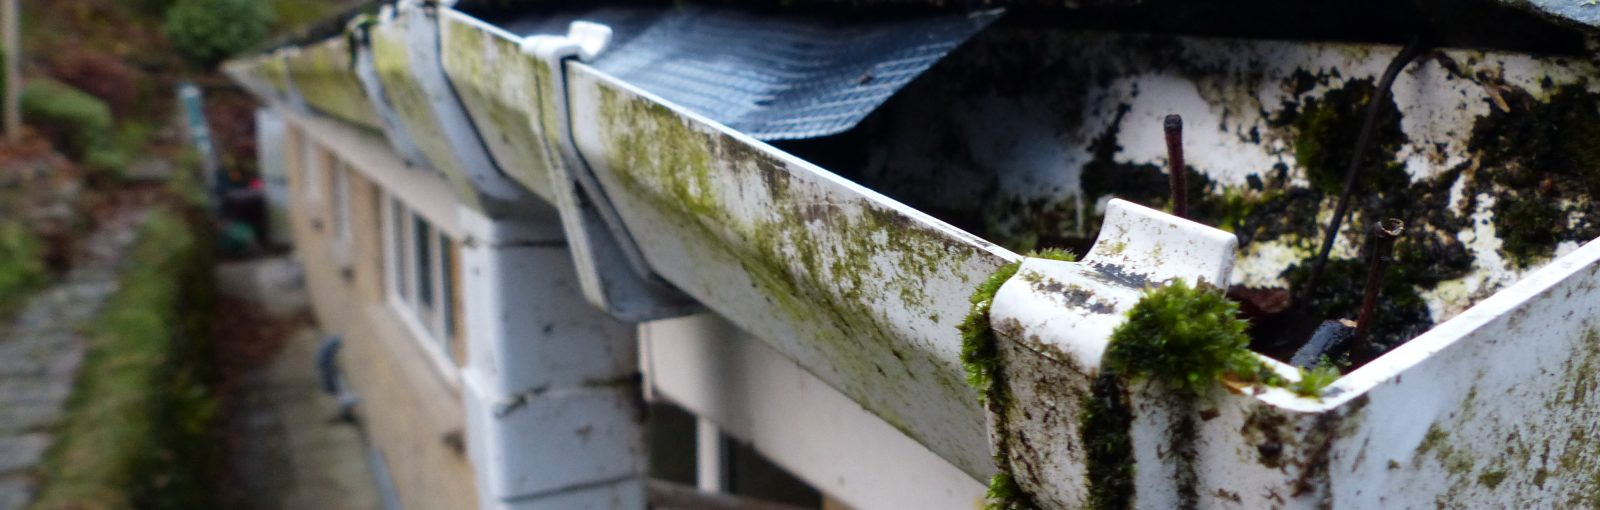 Roof cleaning services in New Jersey and New York.